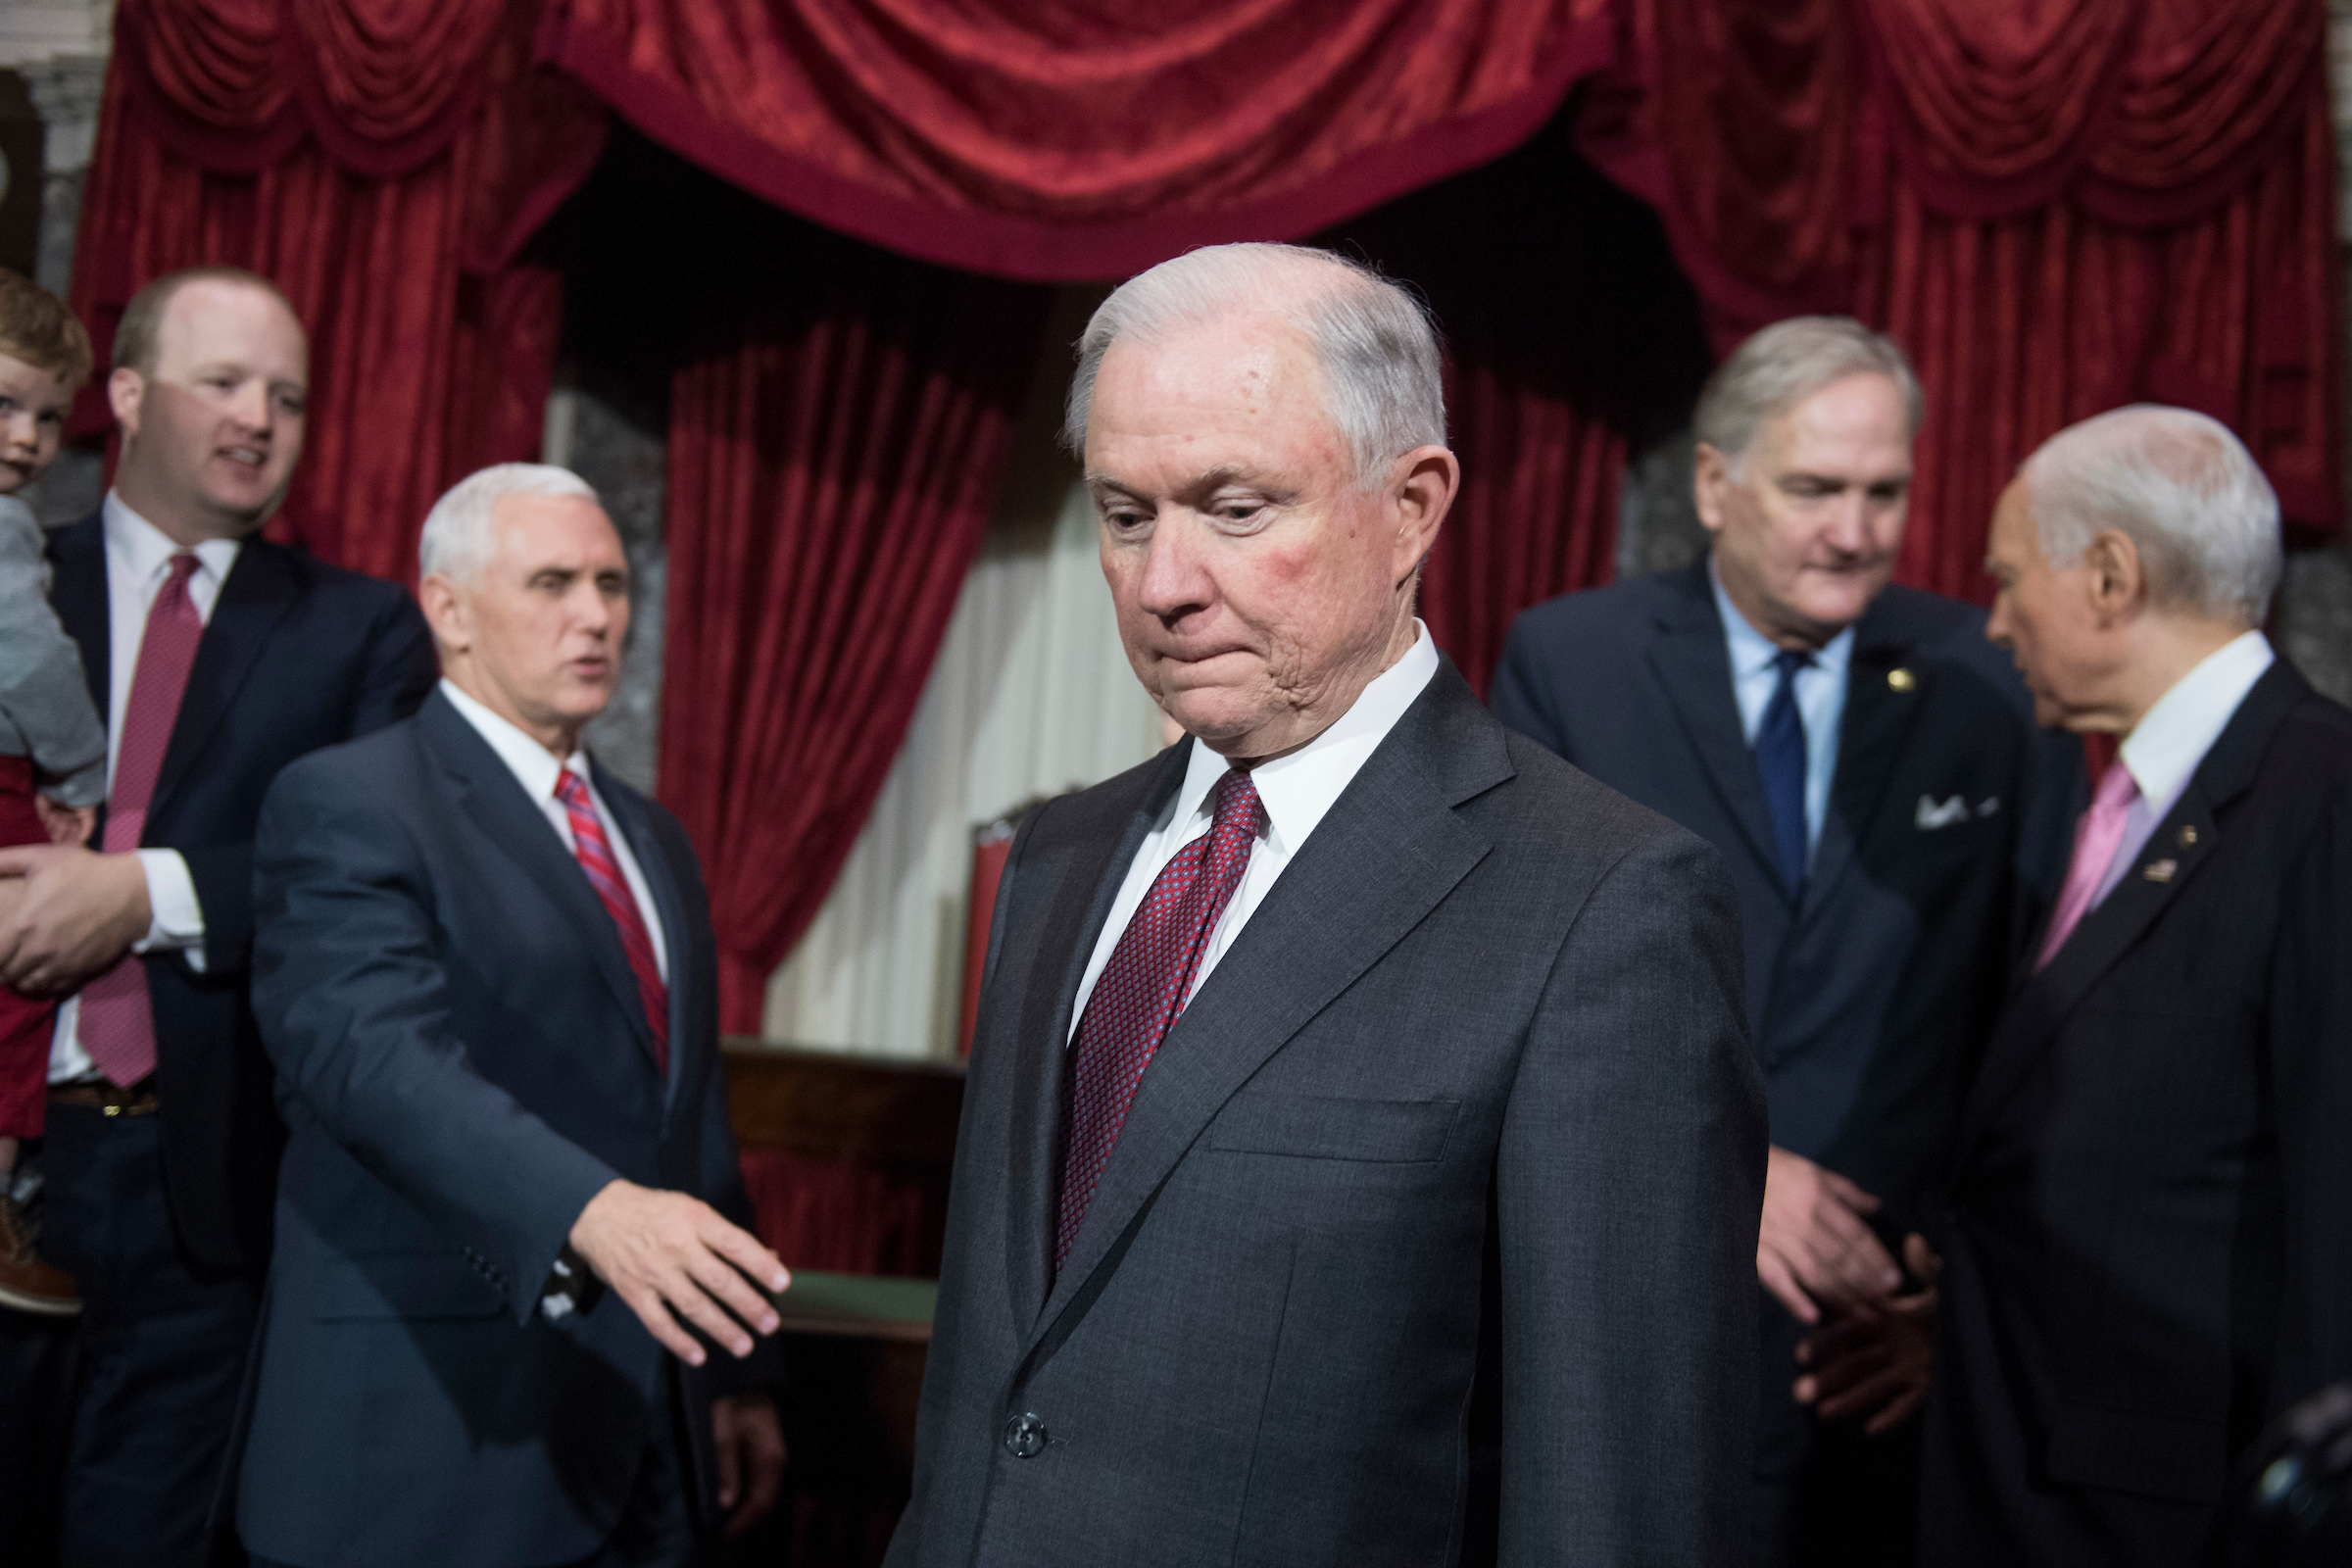 UNITED STATES - FEBRUARY 09: Attorney General Jeff Sessions, center, is pictured with Sen. Luther Strange, R-Ala., second from right, Sen. Orrin Hatch, R-Utah, and Vice President Mike Pence, second from left, during a mock swearing-in ceremony for Strange in the Capitol's Old Senate Chamber, February 9, 2017. Strange filled Sessions' senate seat. (Photo By Tom Williams/CQ Roll Call)